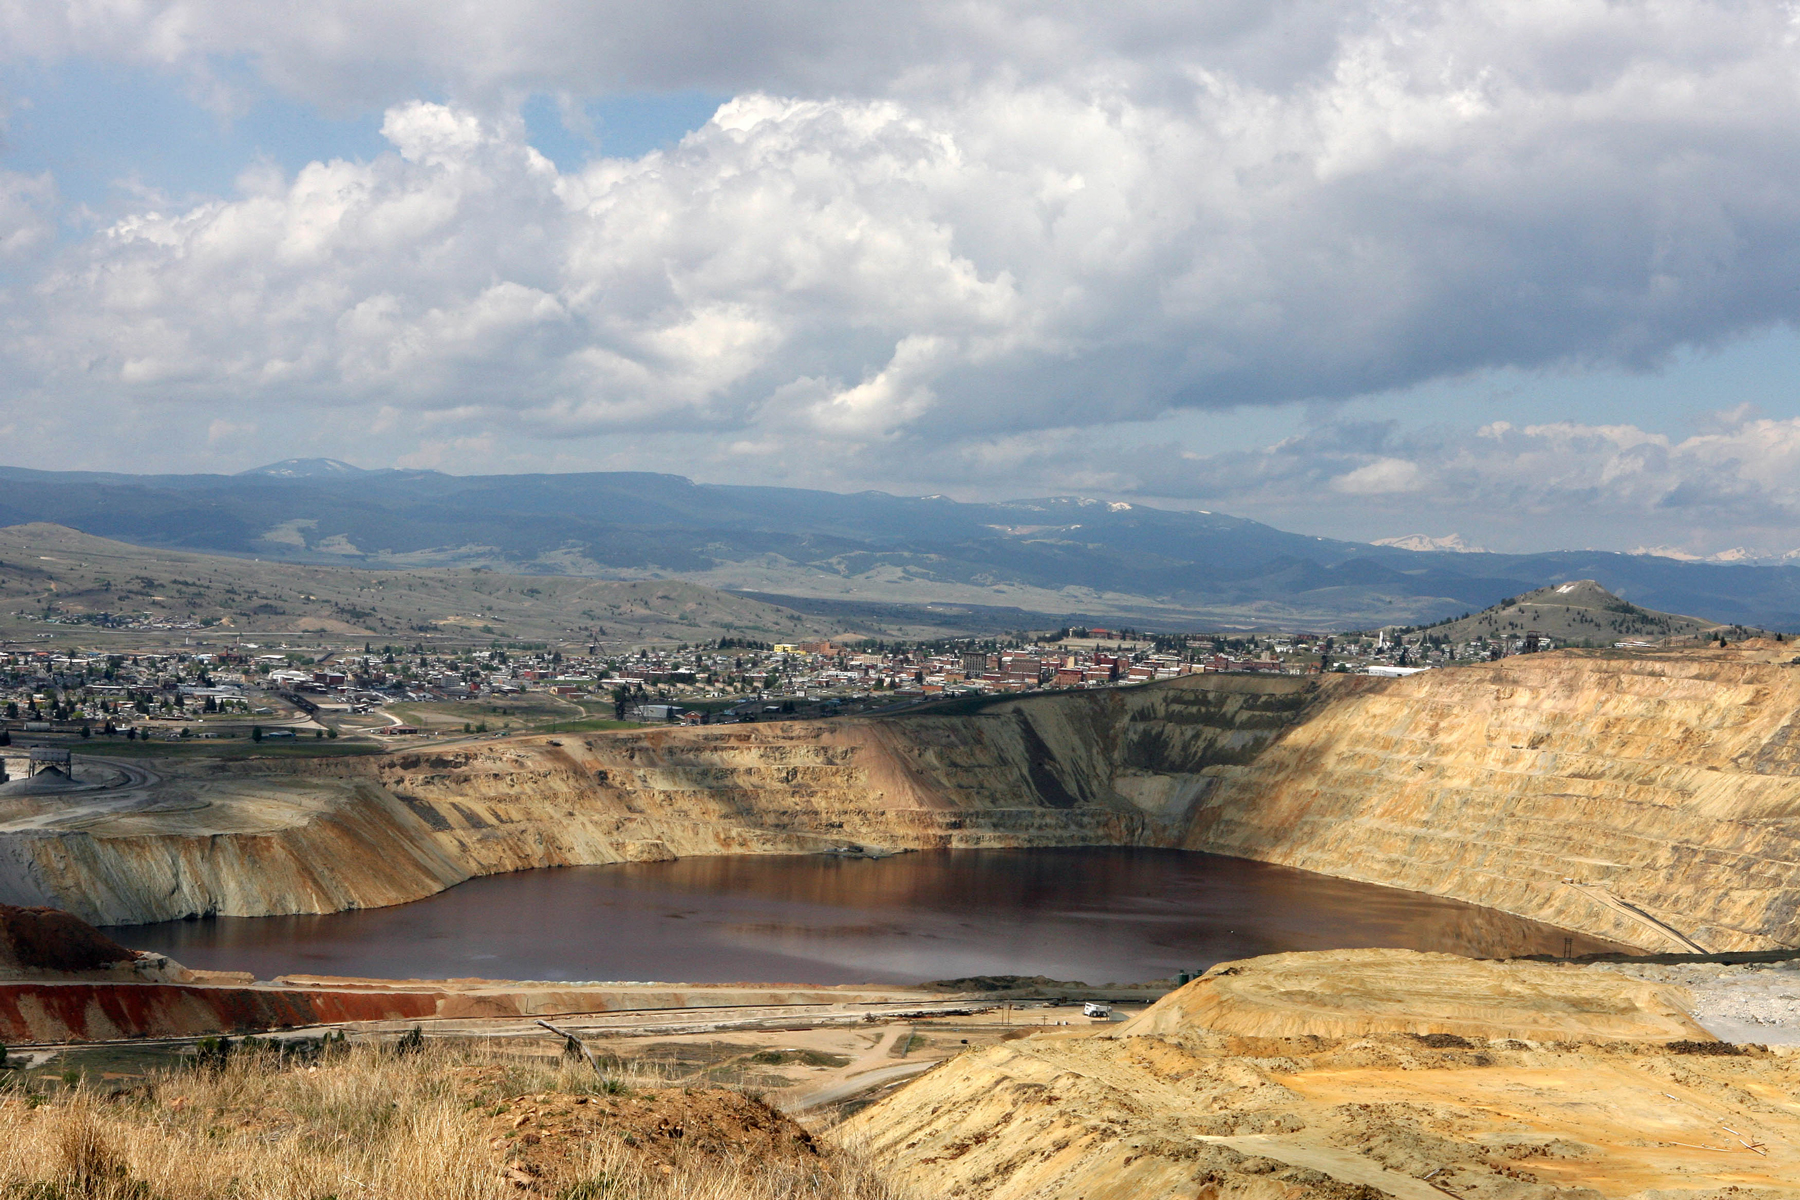 UNITED STATES - MAY 25: The Berkeley Pit, a former open pit copper mine and a part of the Silver Bow/Butte Area Superfund Site, is seen, in Butte, Montana, Thursday, May 25, 2006. The area is contaminated with aluminum, and heavy metals such as arsenic, copper, cadmium, and lead. (Photo by Stephen Hilger/Bloomberg via Getty Images)